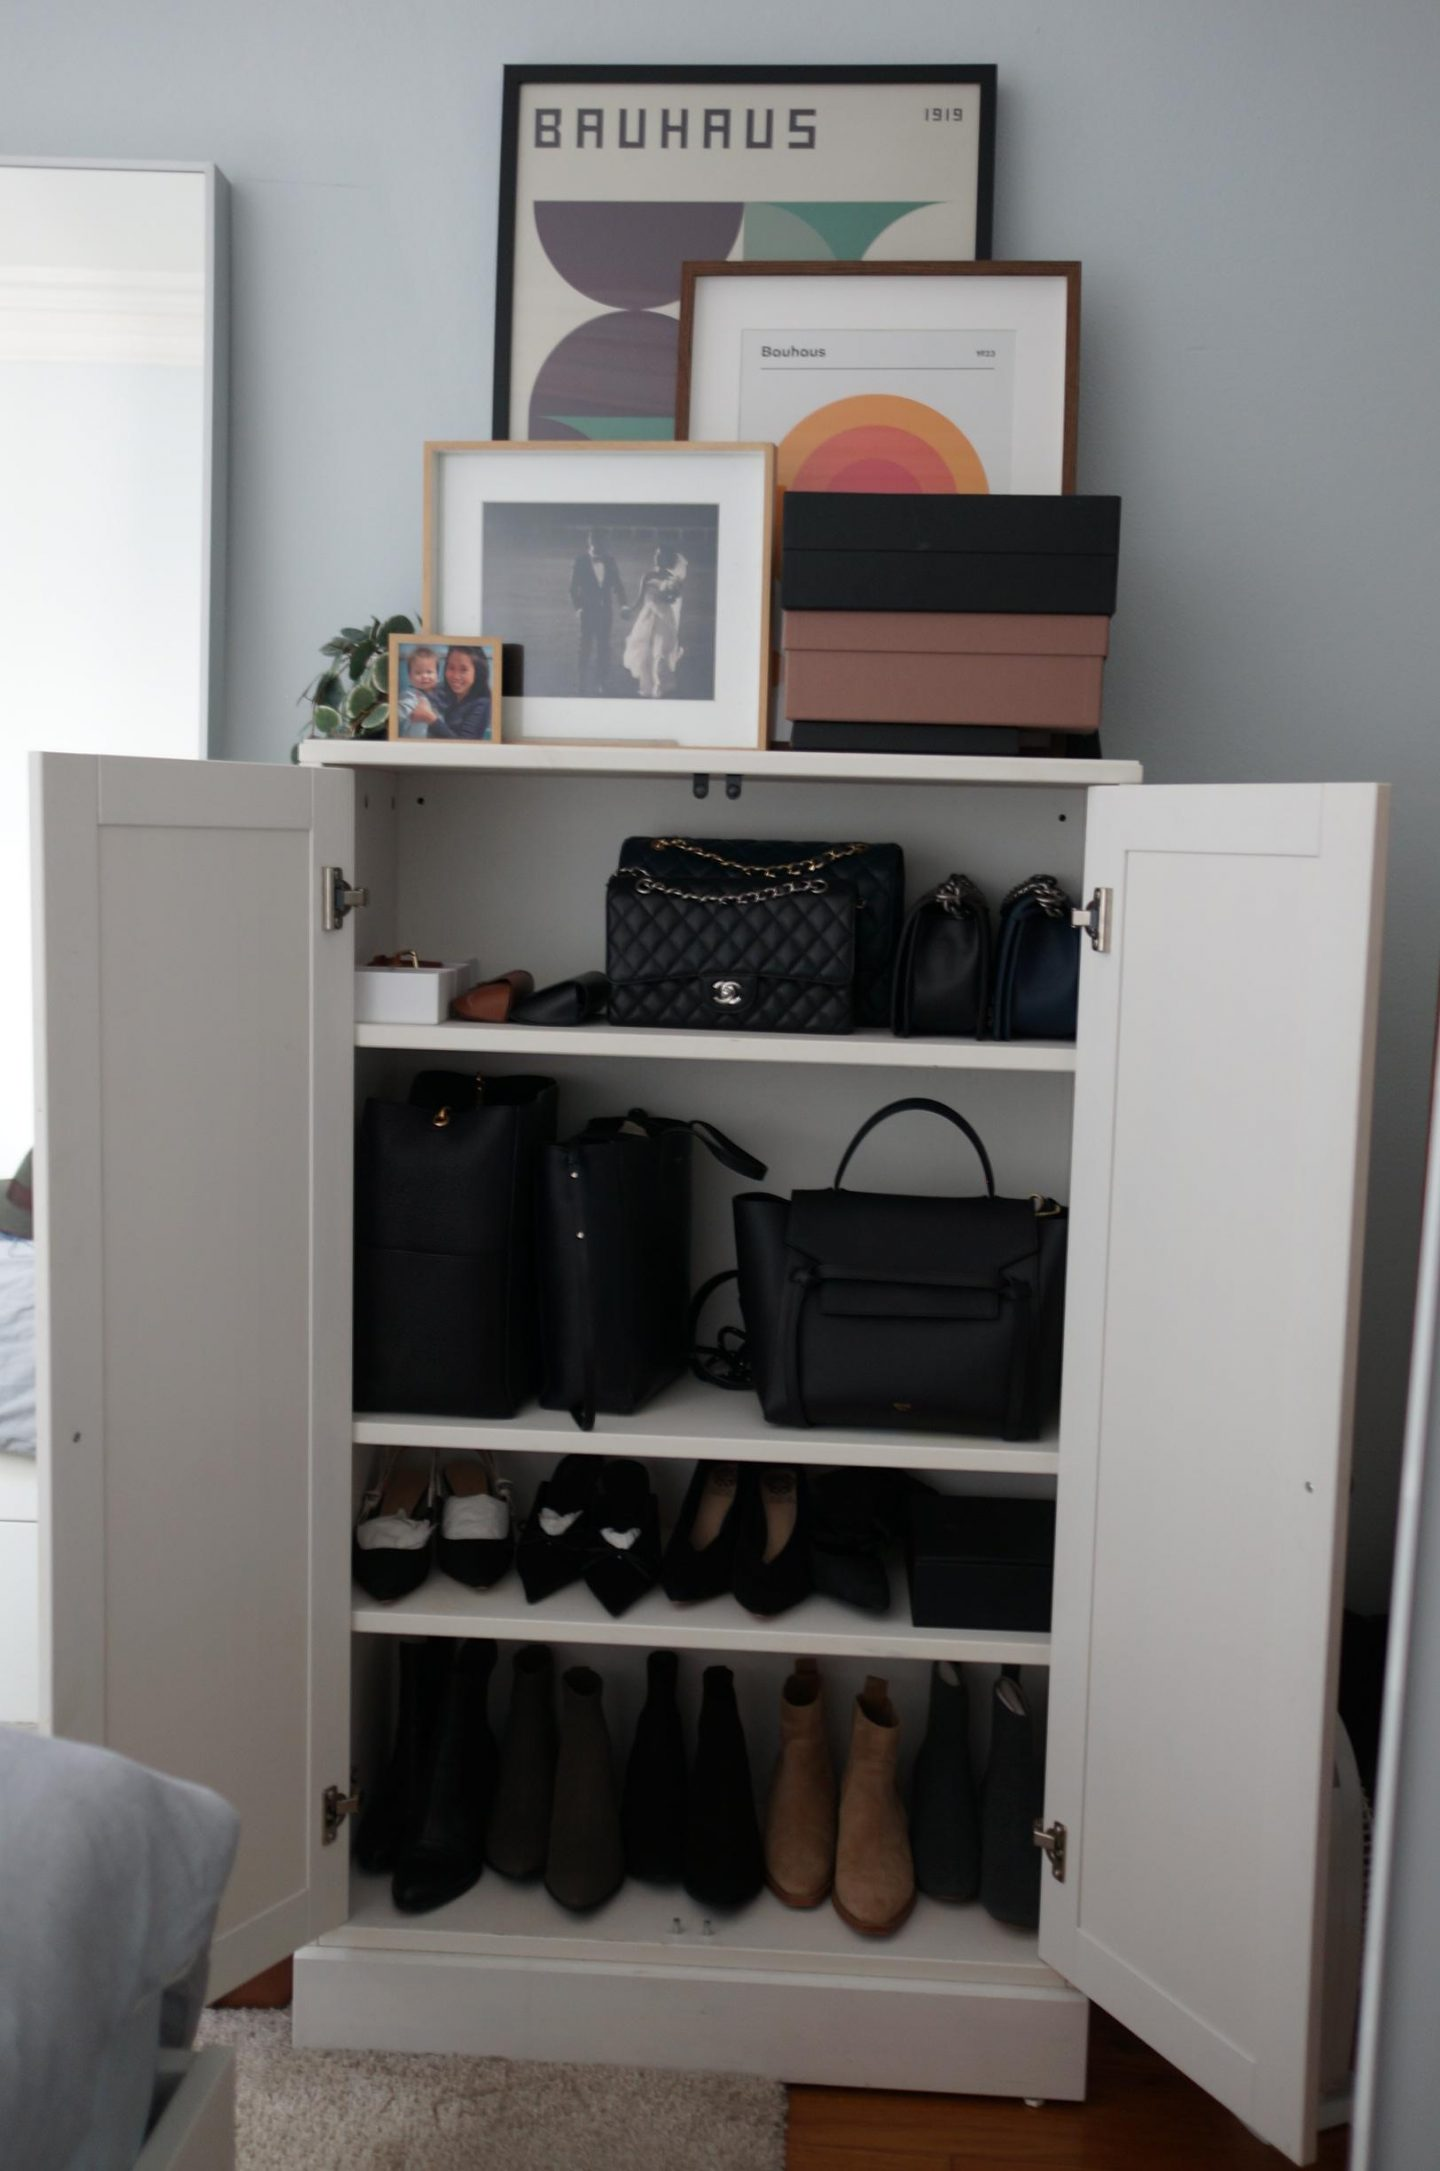 My Top Tips for Caring for Your Handbags